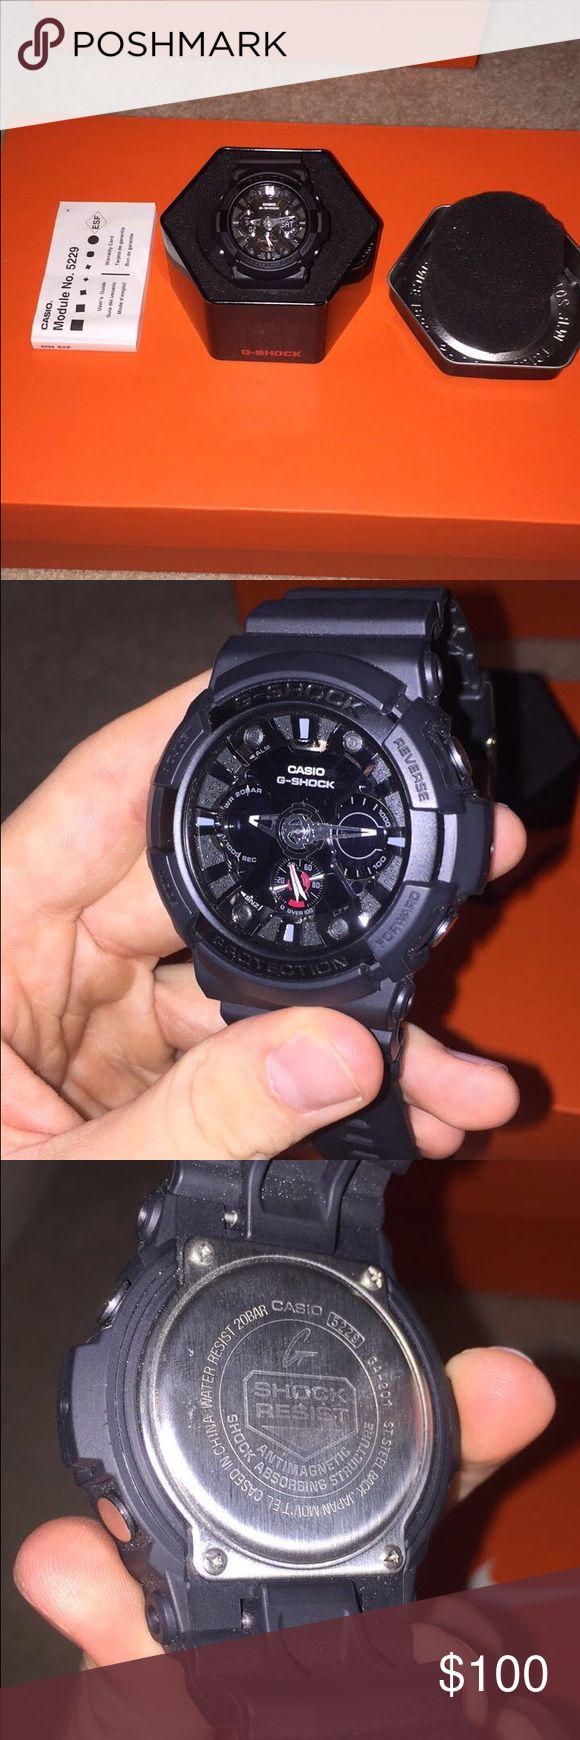 Black G-Shock for sale Wazup guys! I'm putting my black, Casio G-Shock up for sale. I've had this watch for about two years and I've worn it occasionally from time to time and It's in great condition! There are no marks on the face or band of the watch.                    - Watch Specs: Water Resistant (up to 200m), Tells water depth, Stopwatch, Digital time of day, Analog time of day, Day of the week, LED light (yellow), Count down timer                             Please leave a comment if…